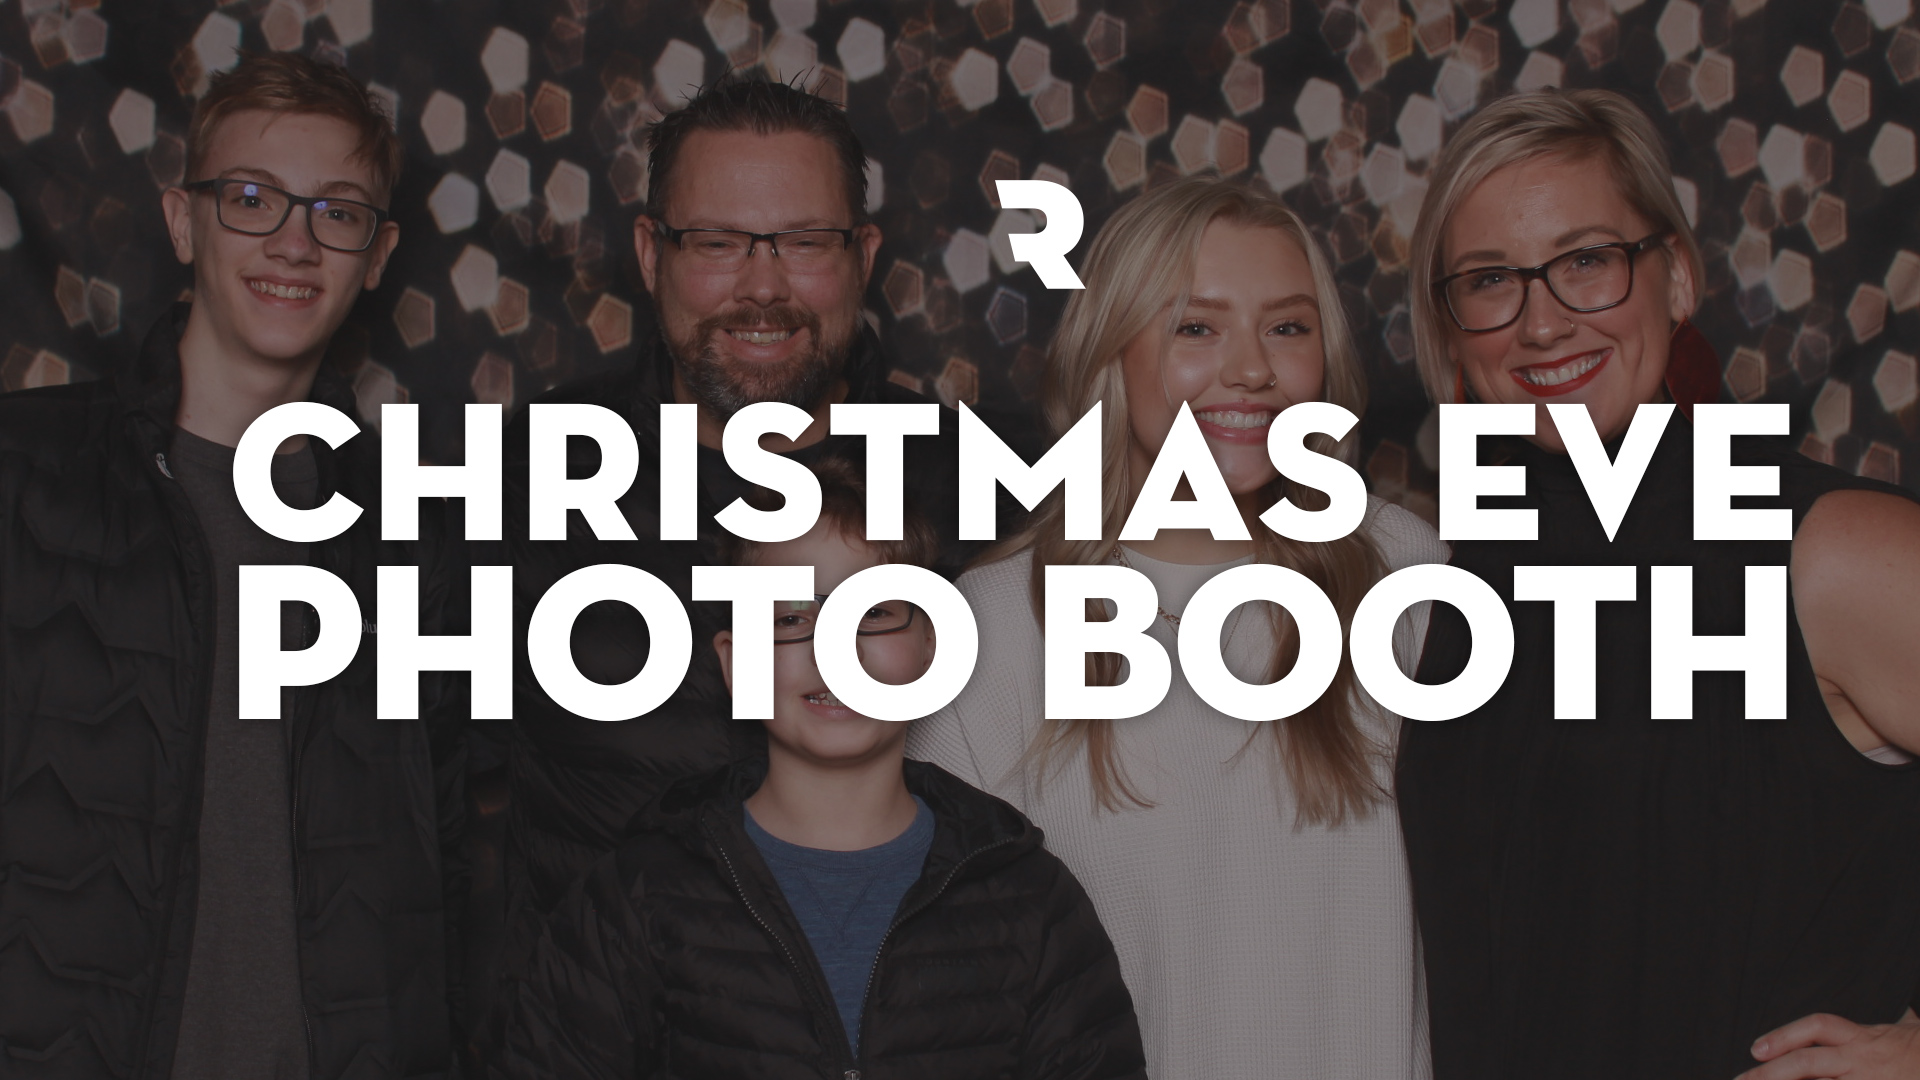 Christmas Eve Photobooth 2020